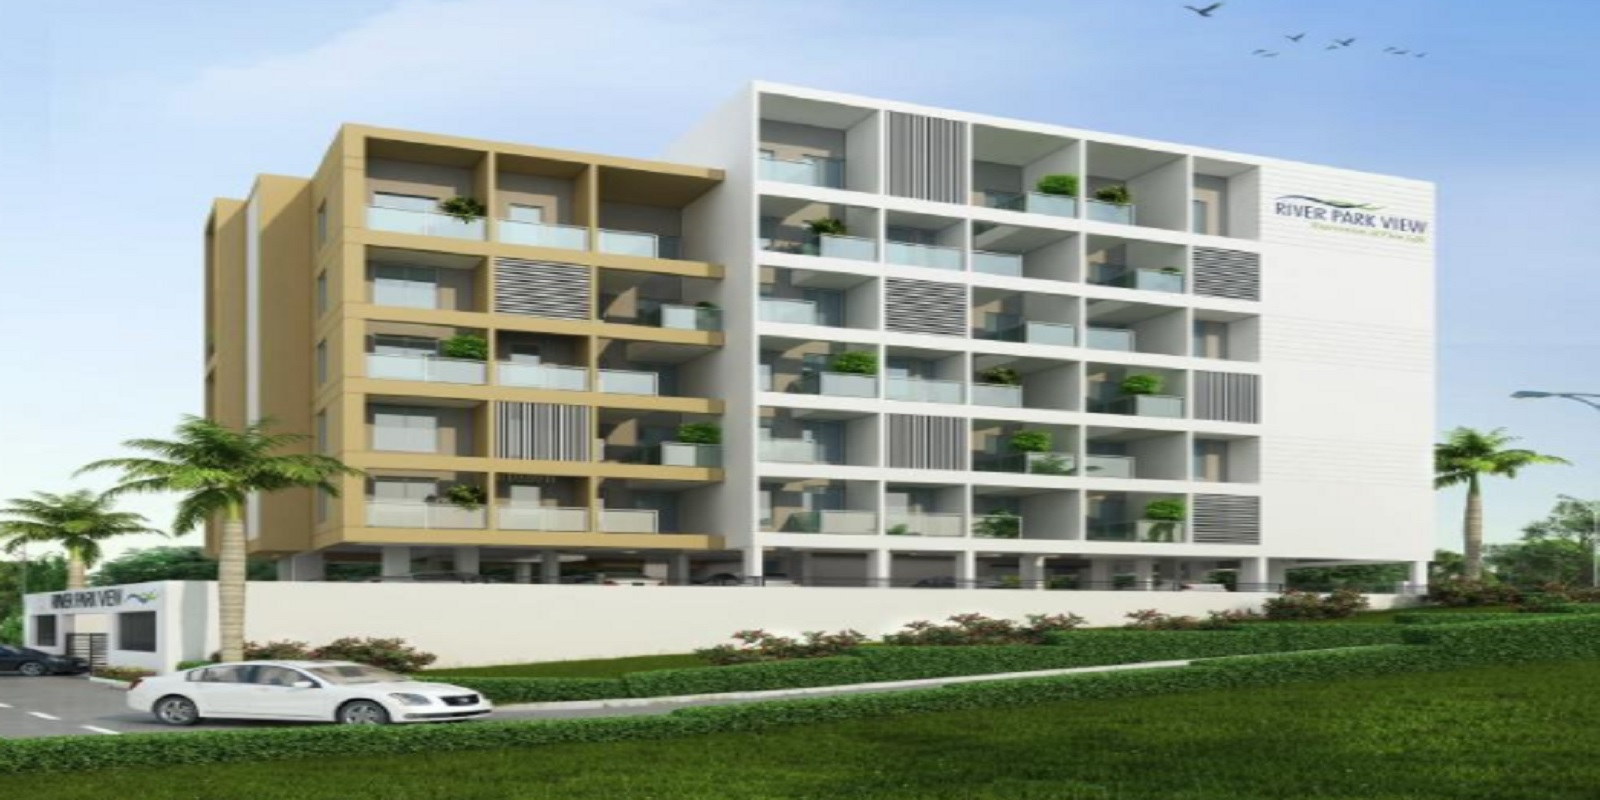 ayush river park view project project large image1